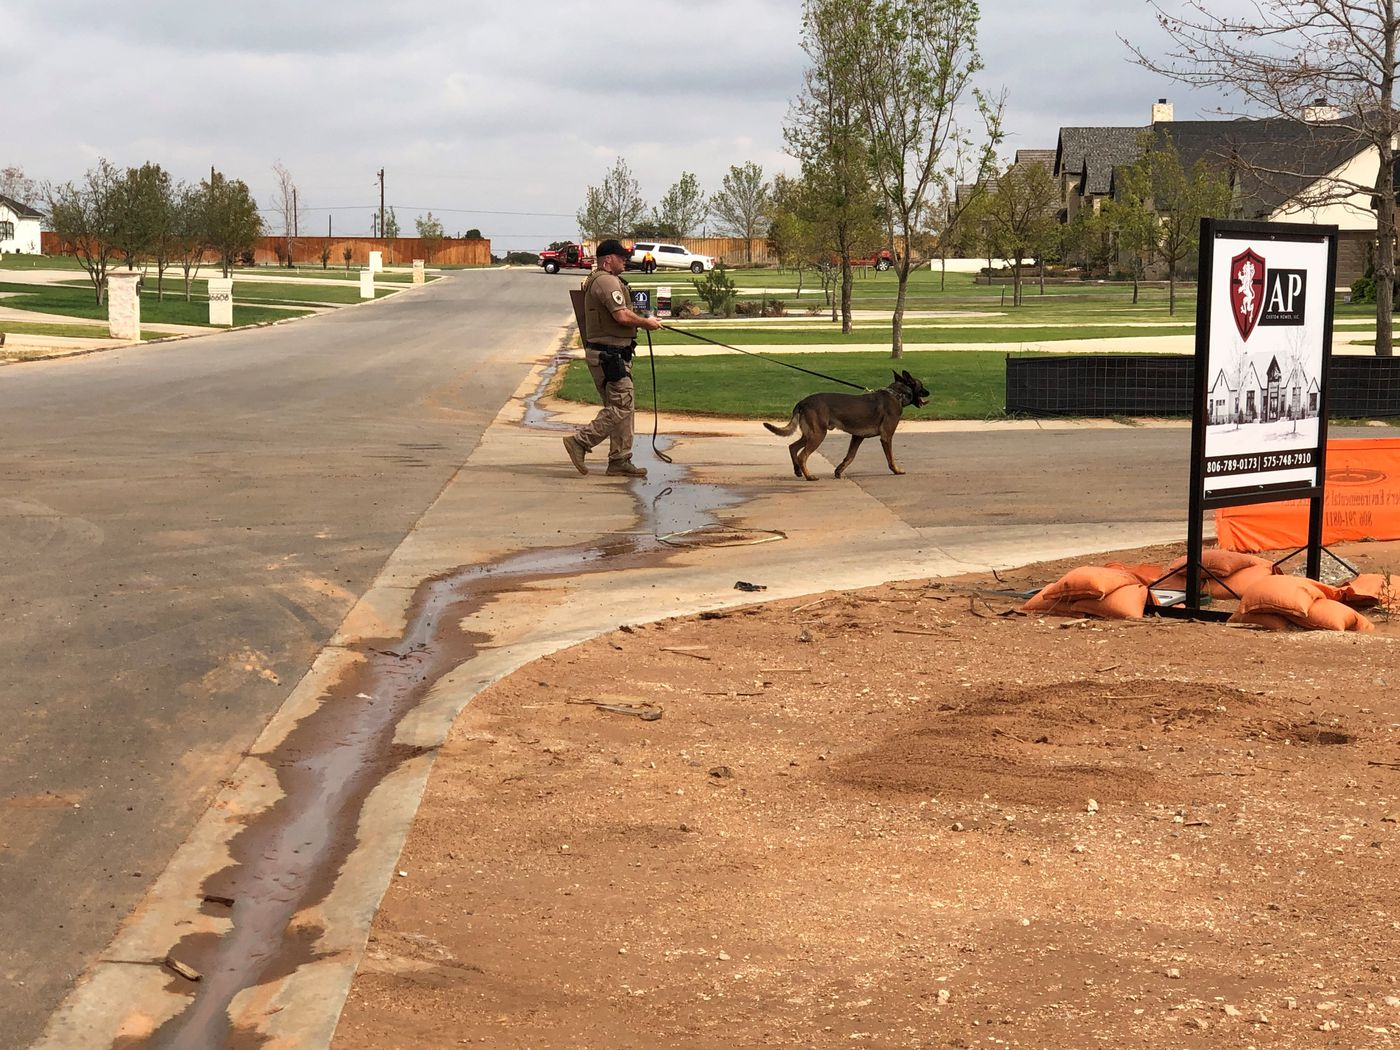 After the two suspects bailed from the stolen vehicle, a DPS K9 officer was helping in the search.